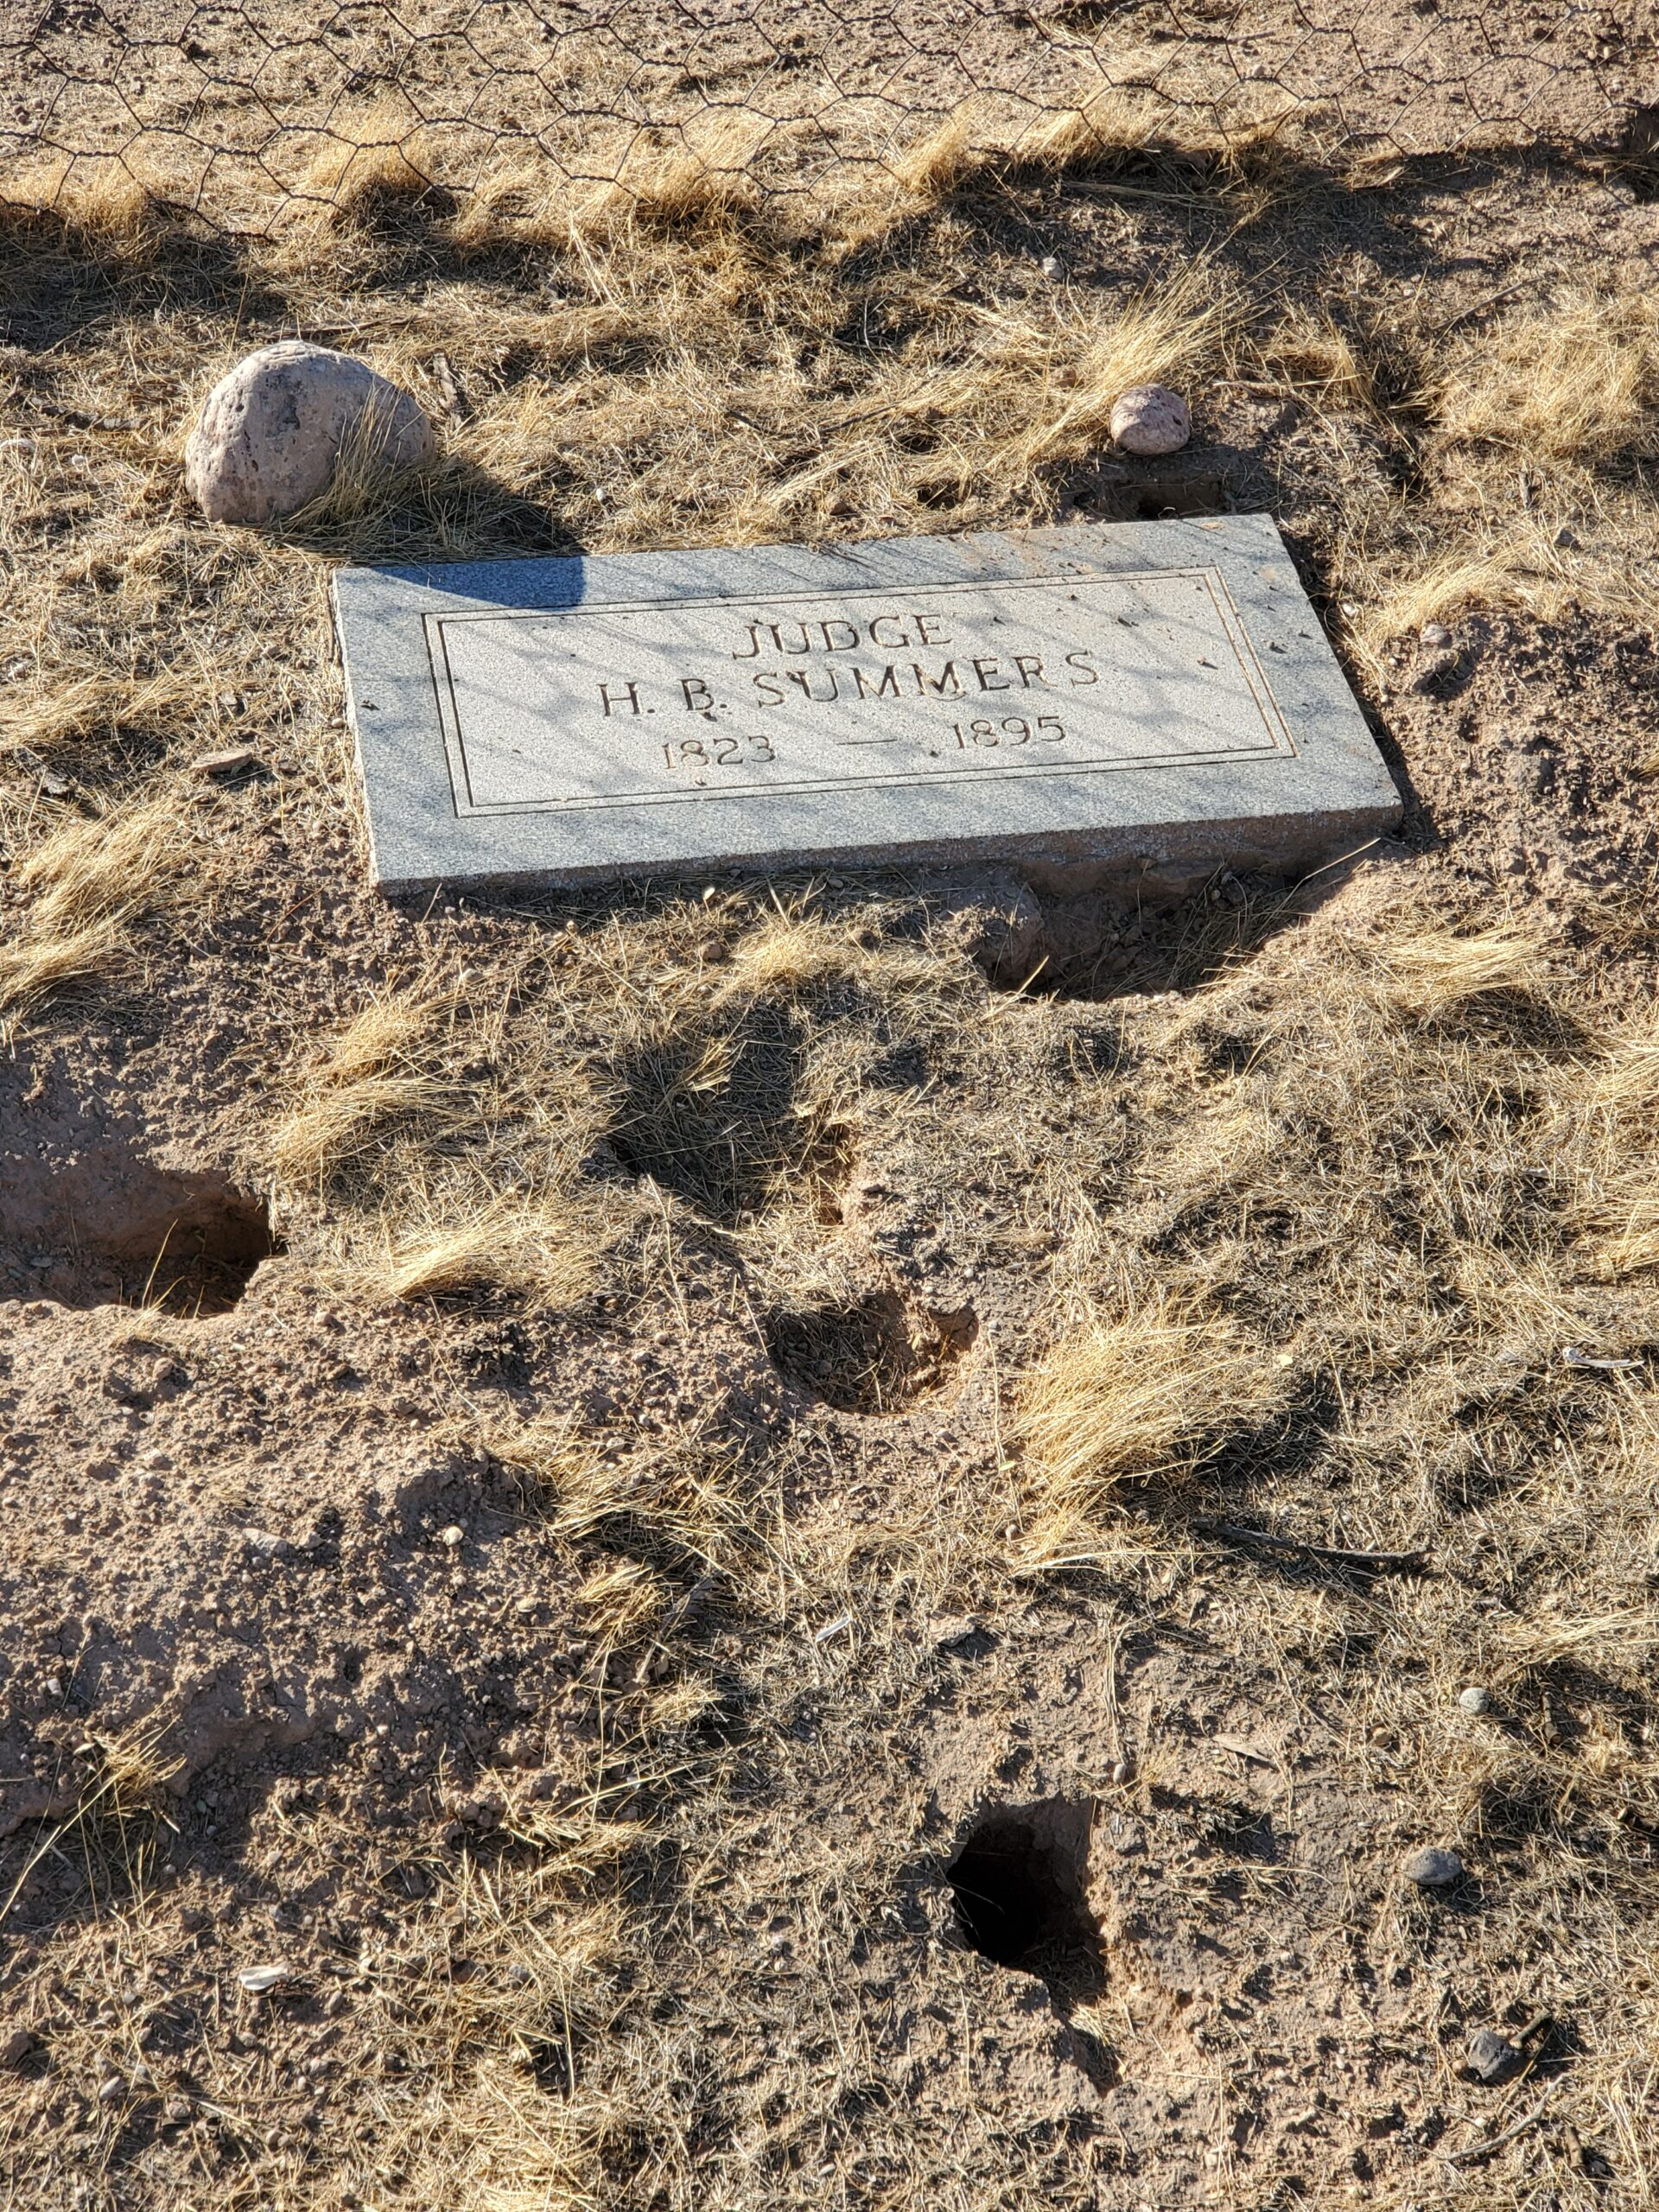 This simple headstone marks the final resting place of a judge from before Arizona became a state